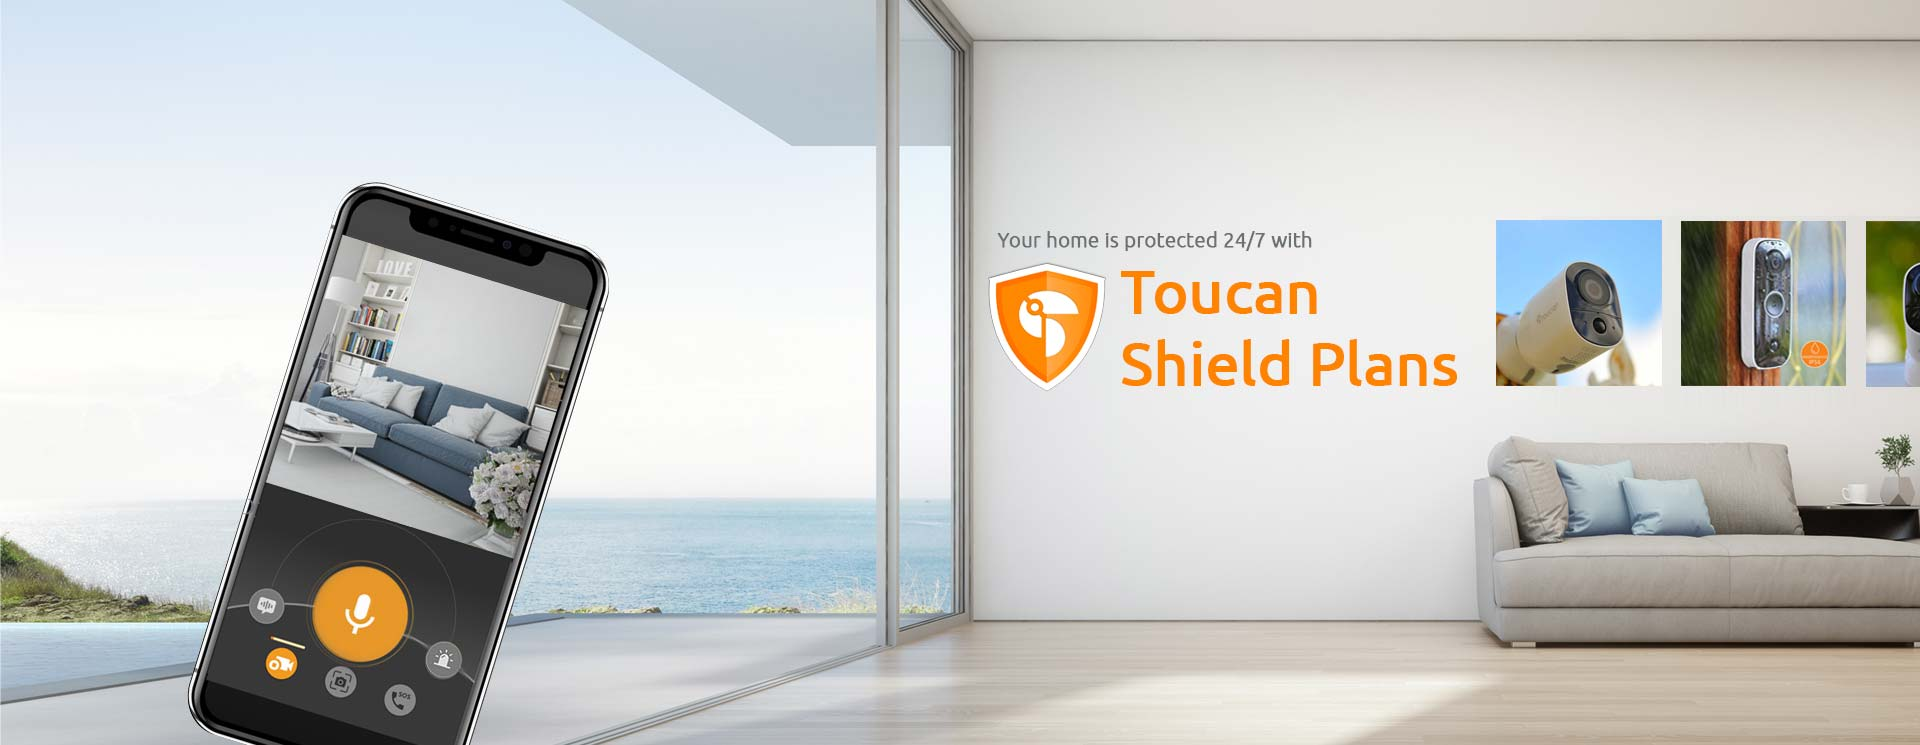 Toucan Shield Plans I Free I Pro I Elite